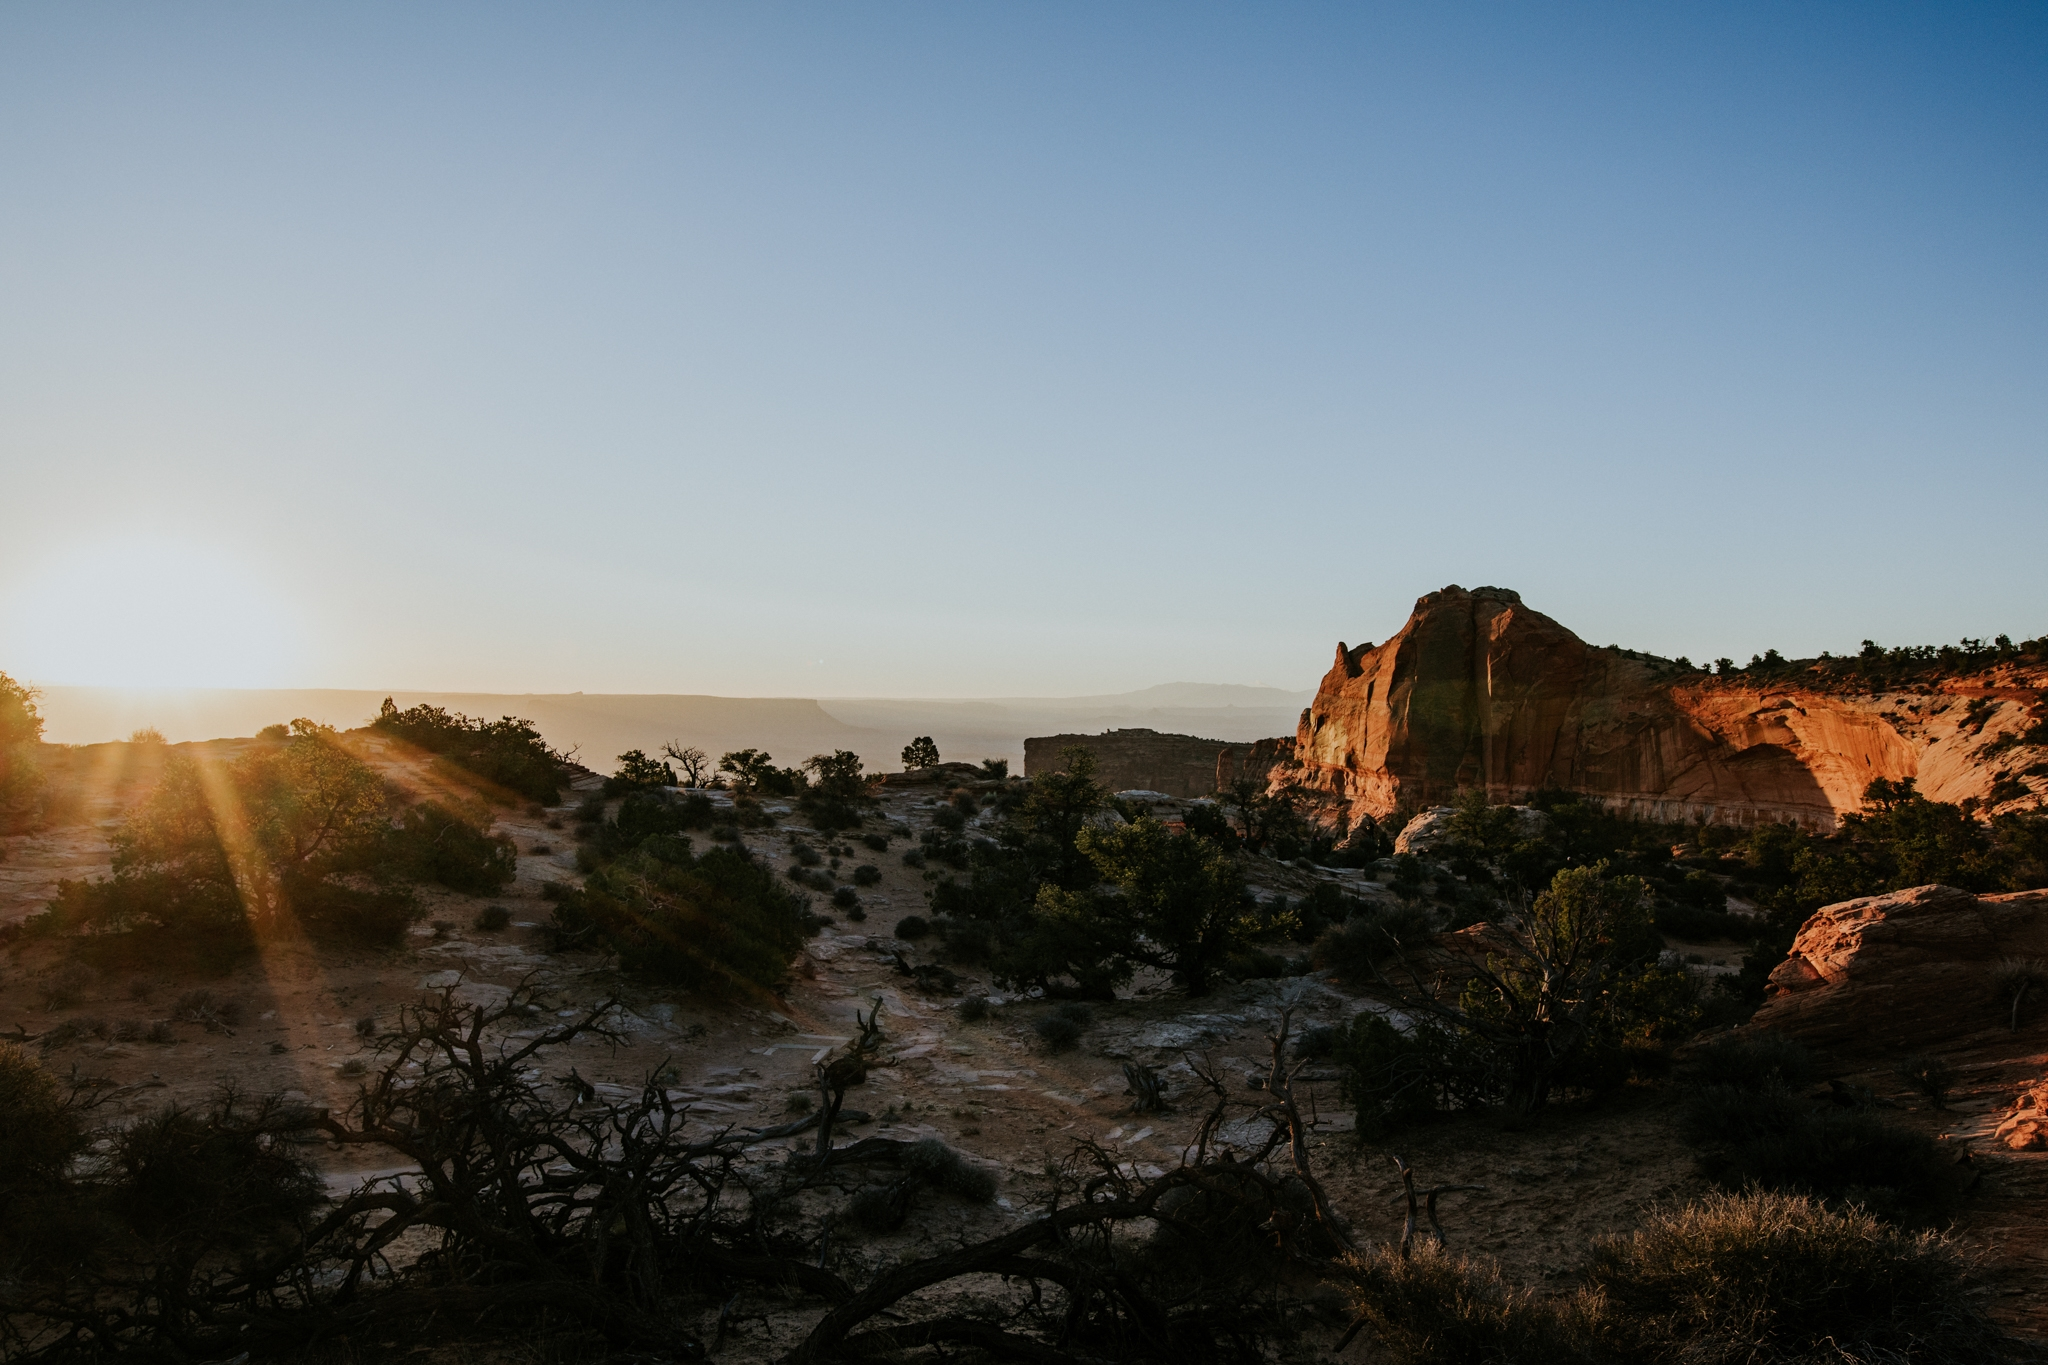 Canyonlands National Park - Mesa Arch Sunrise - Moab Elopement Photographer - Moab Elopement Videographer - Vow of the Wild